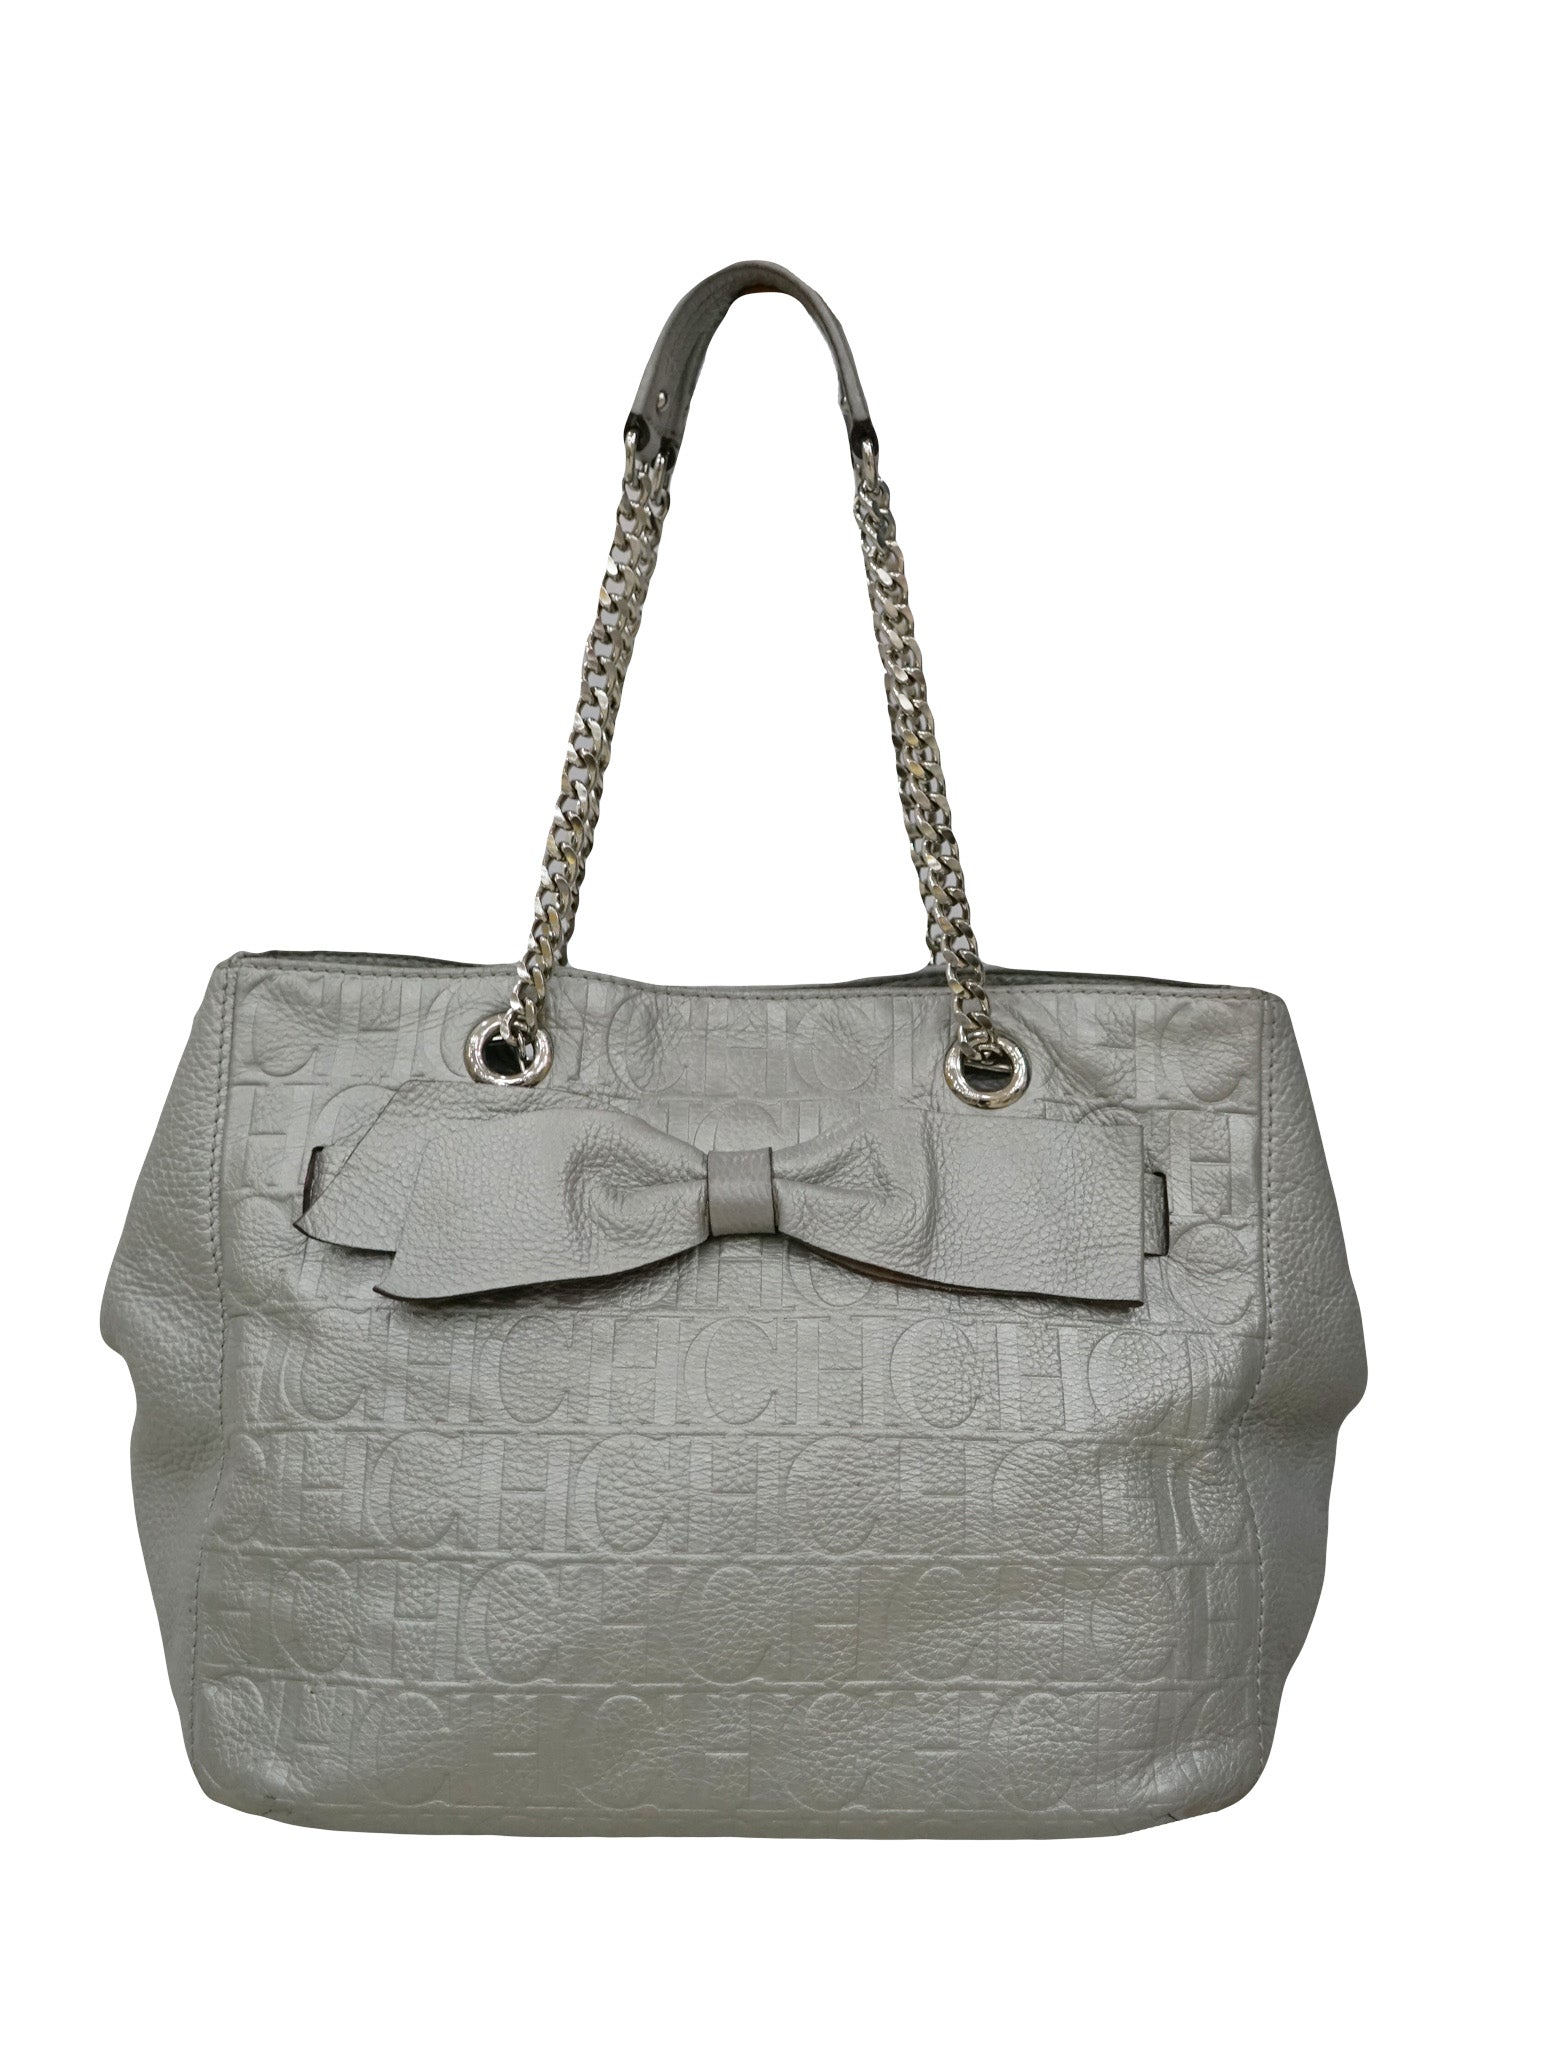 SILVER MONOGRAM EMBOSSED TOTE BAG